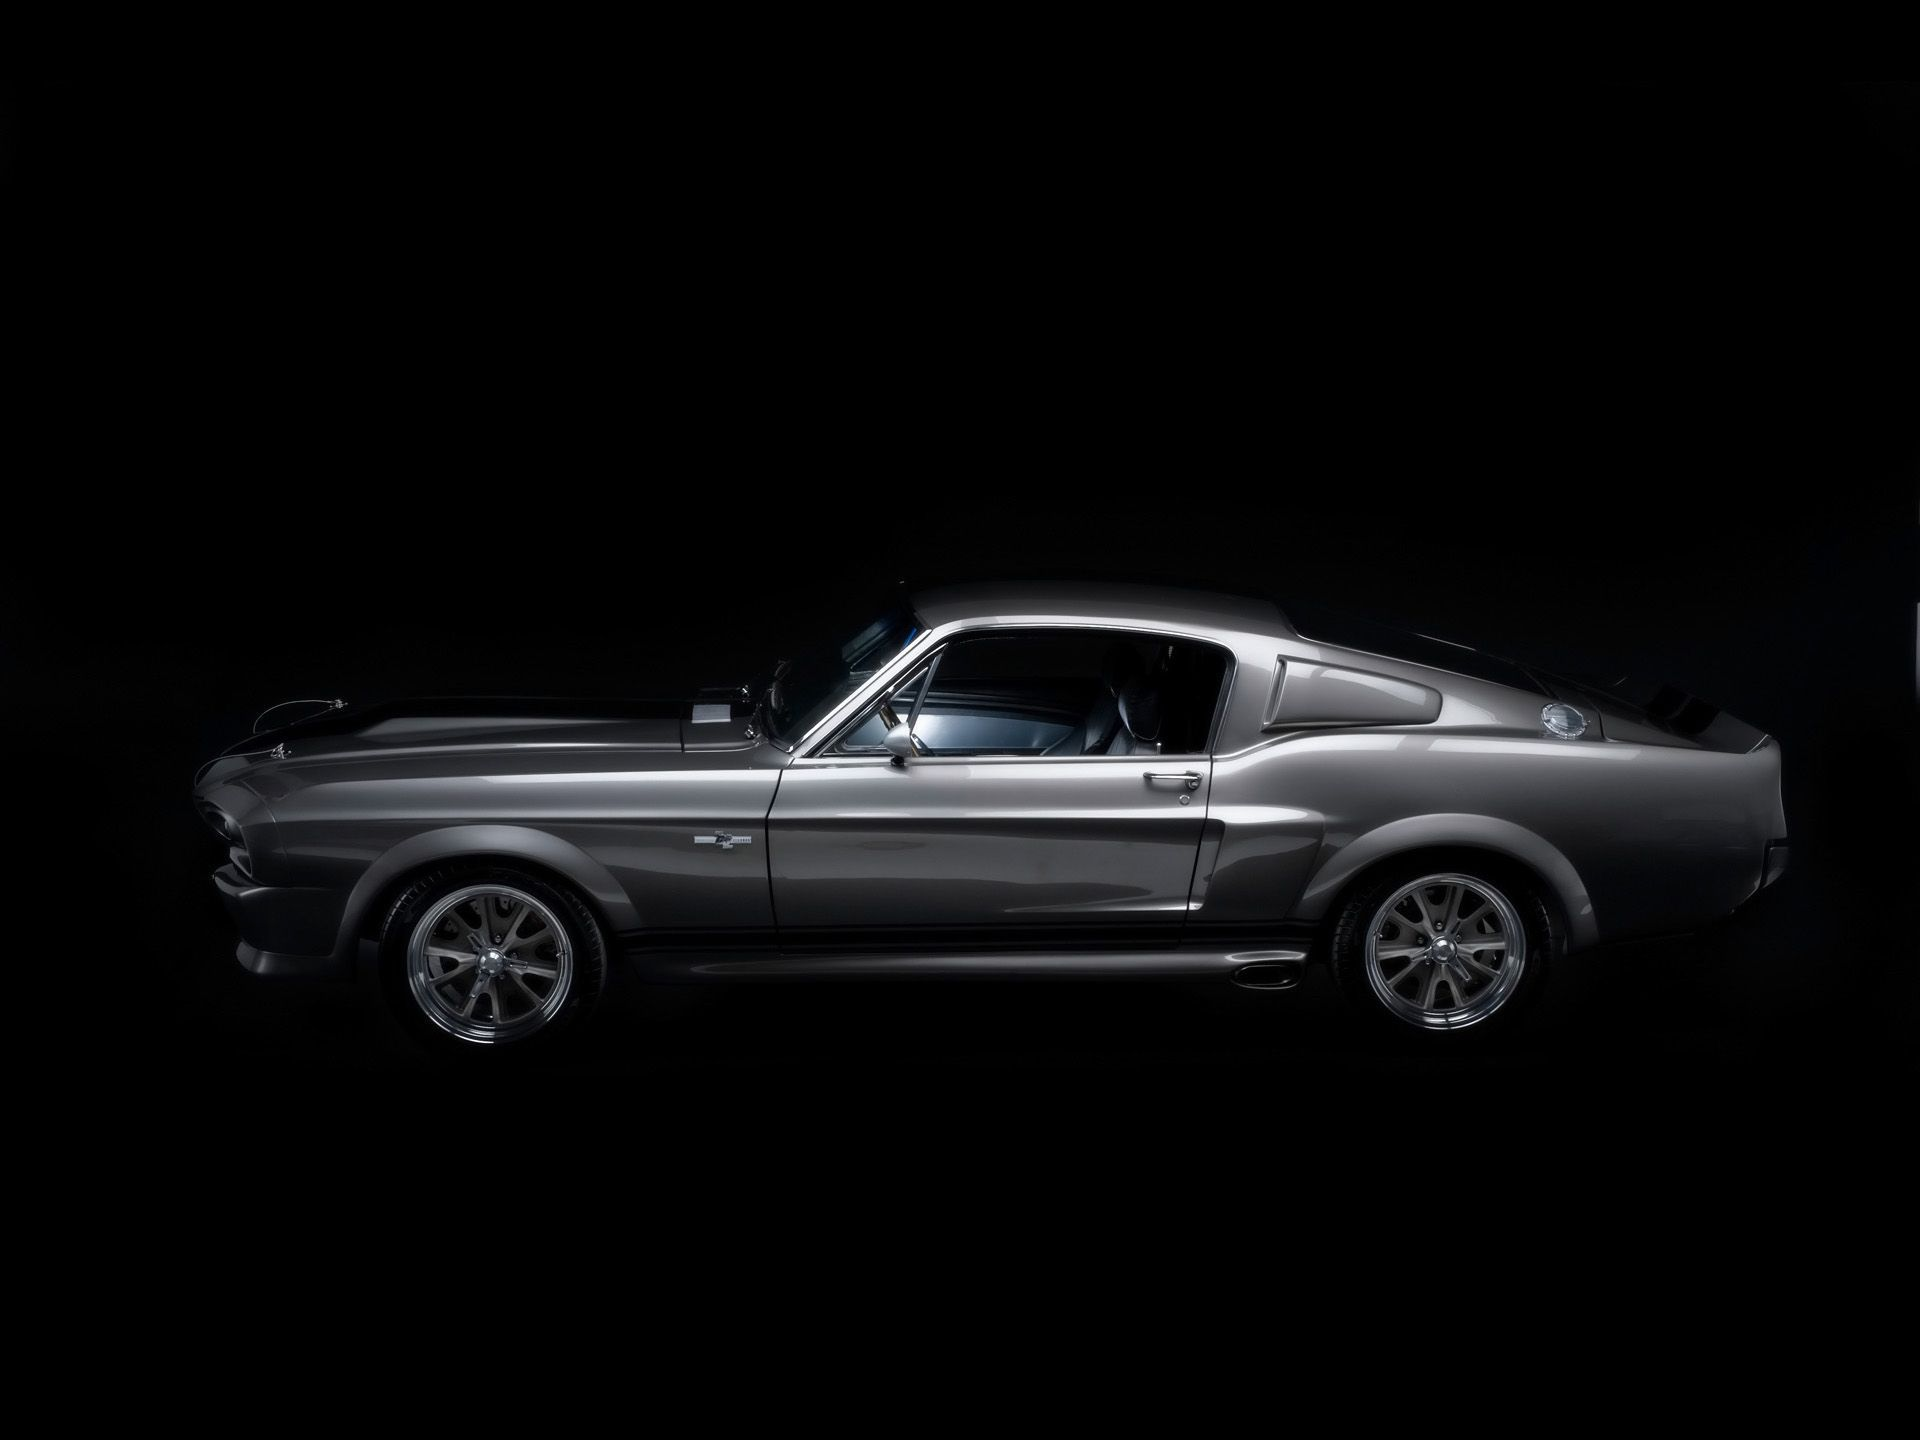 1967 mustang wallpapers wallpaper cave